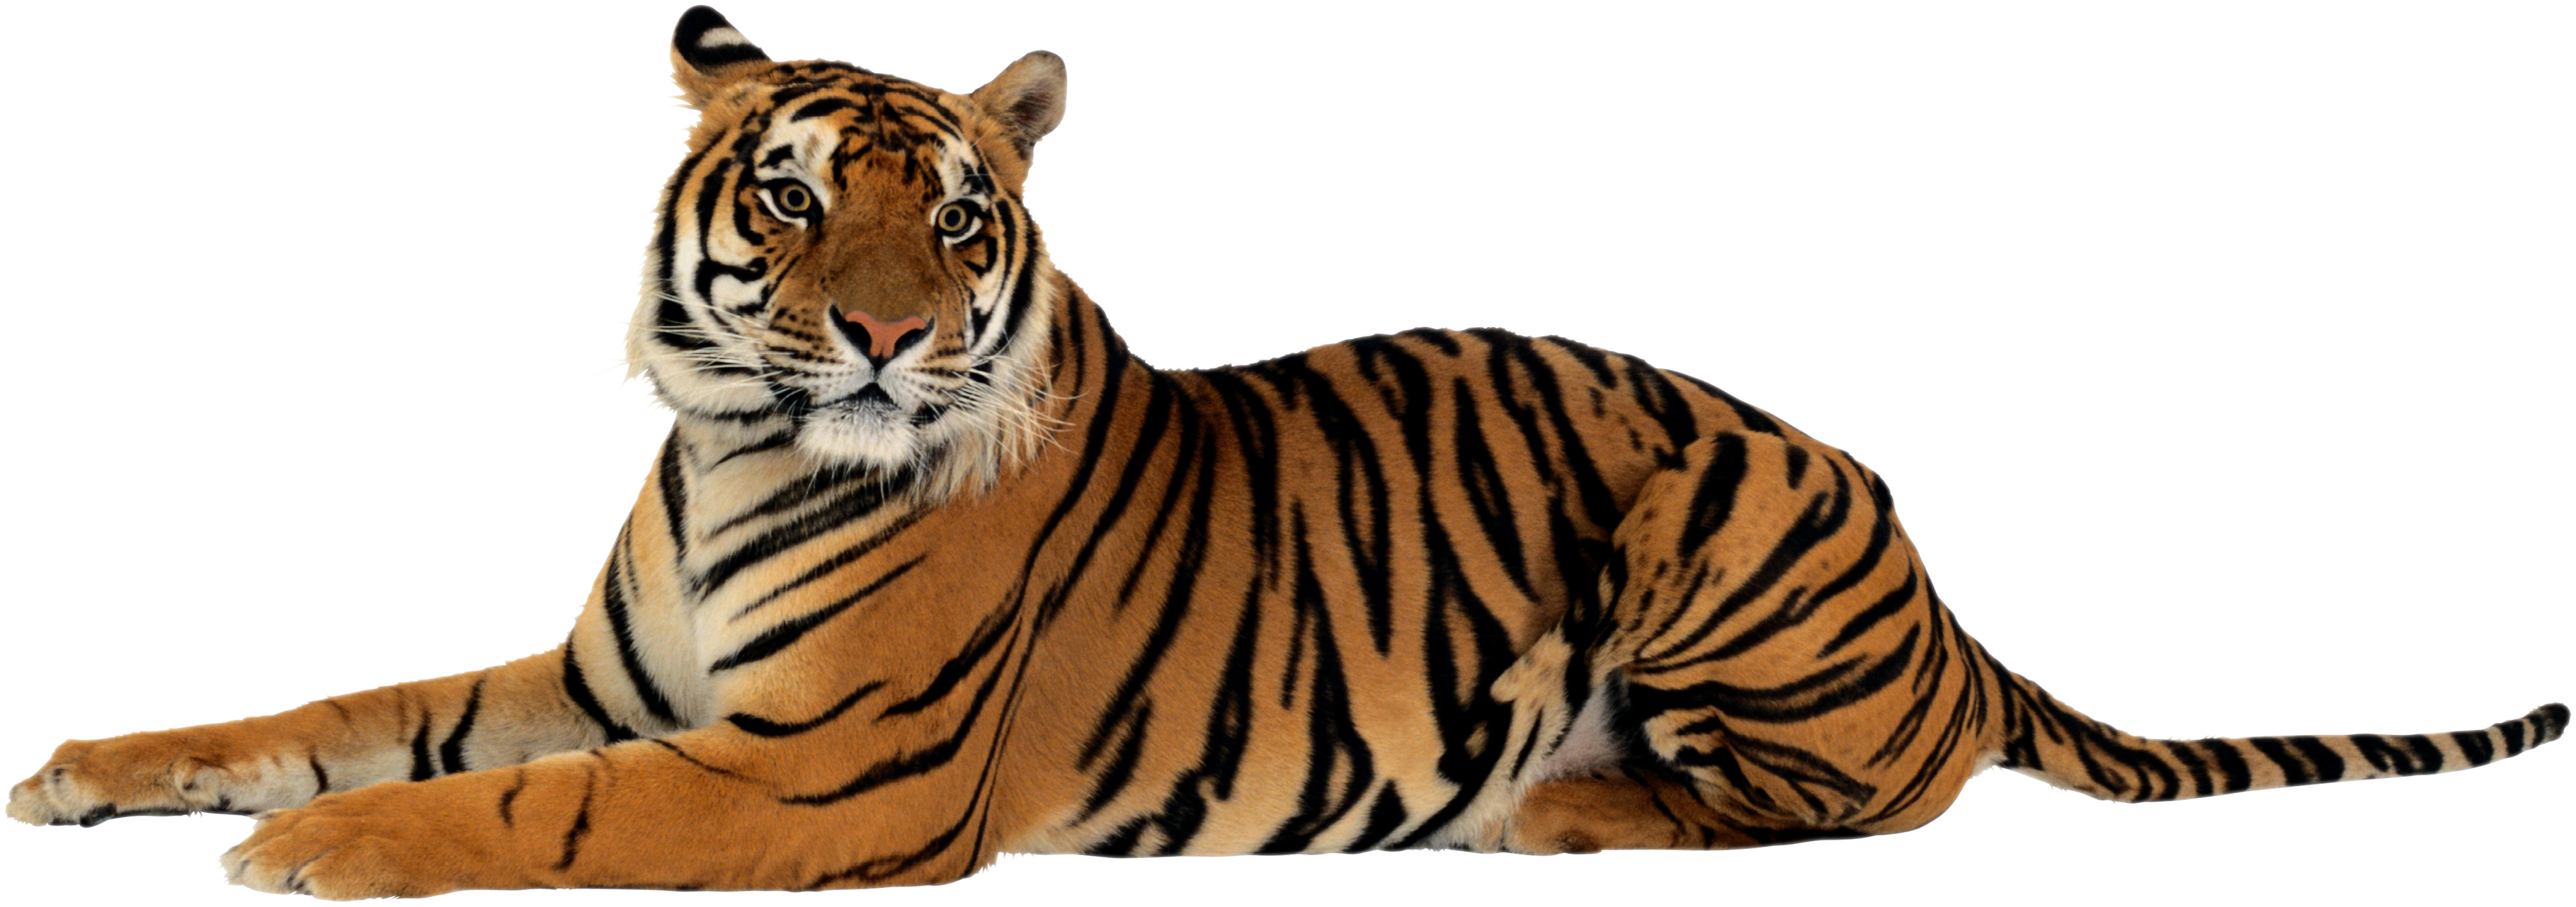 tiger png images the deadly asian cat png only #14722